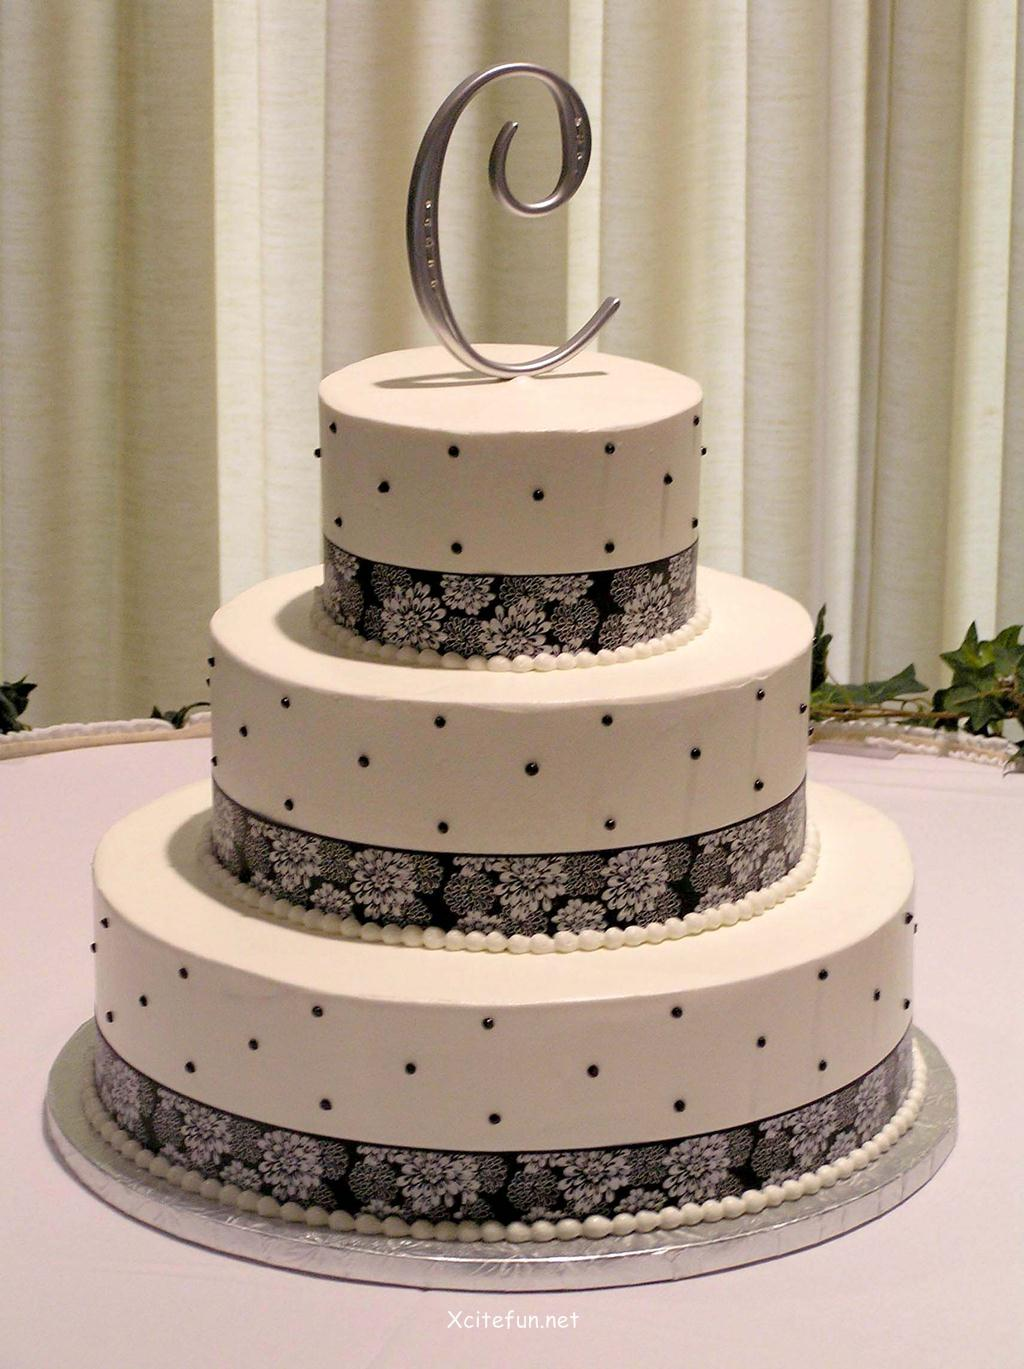 Cake Designs Ideas christmas cake decoration ideas Feature Photographer Wedding Cake Design Ideas